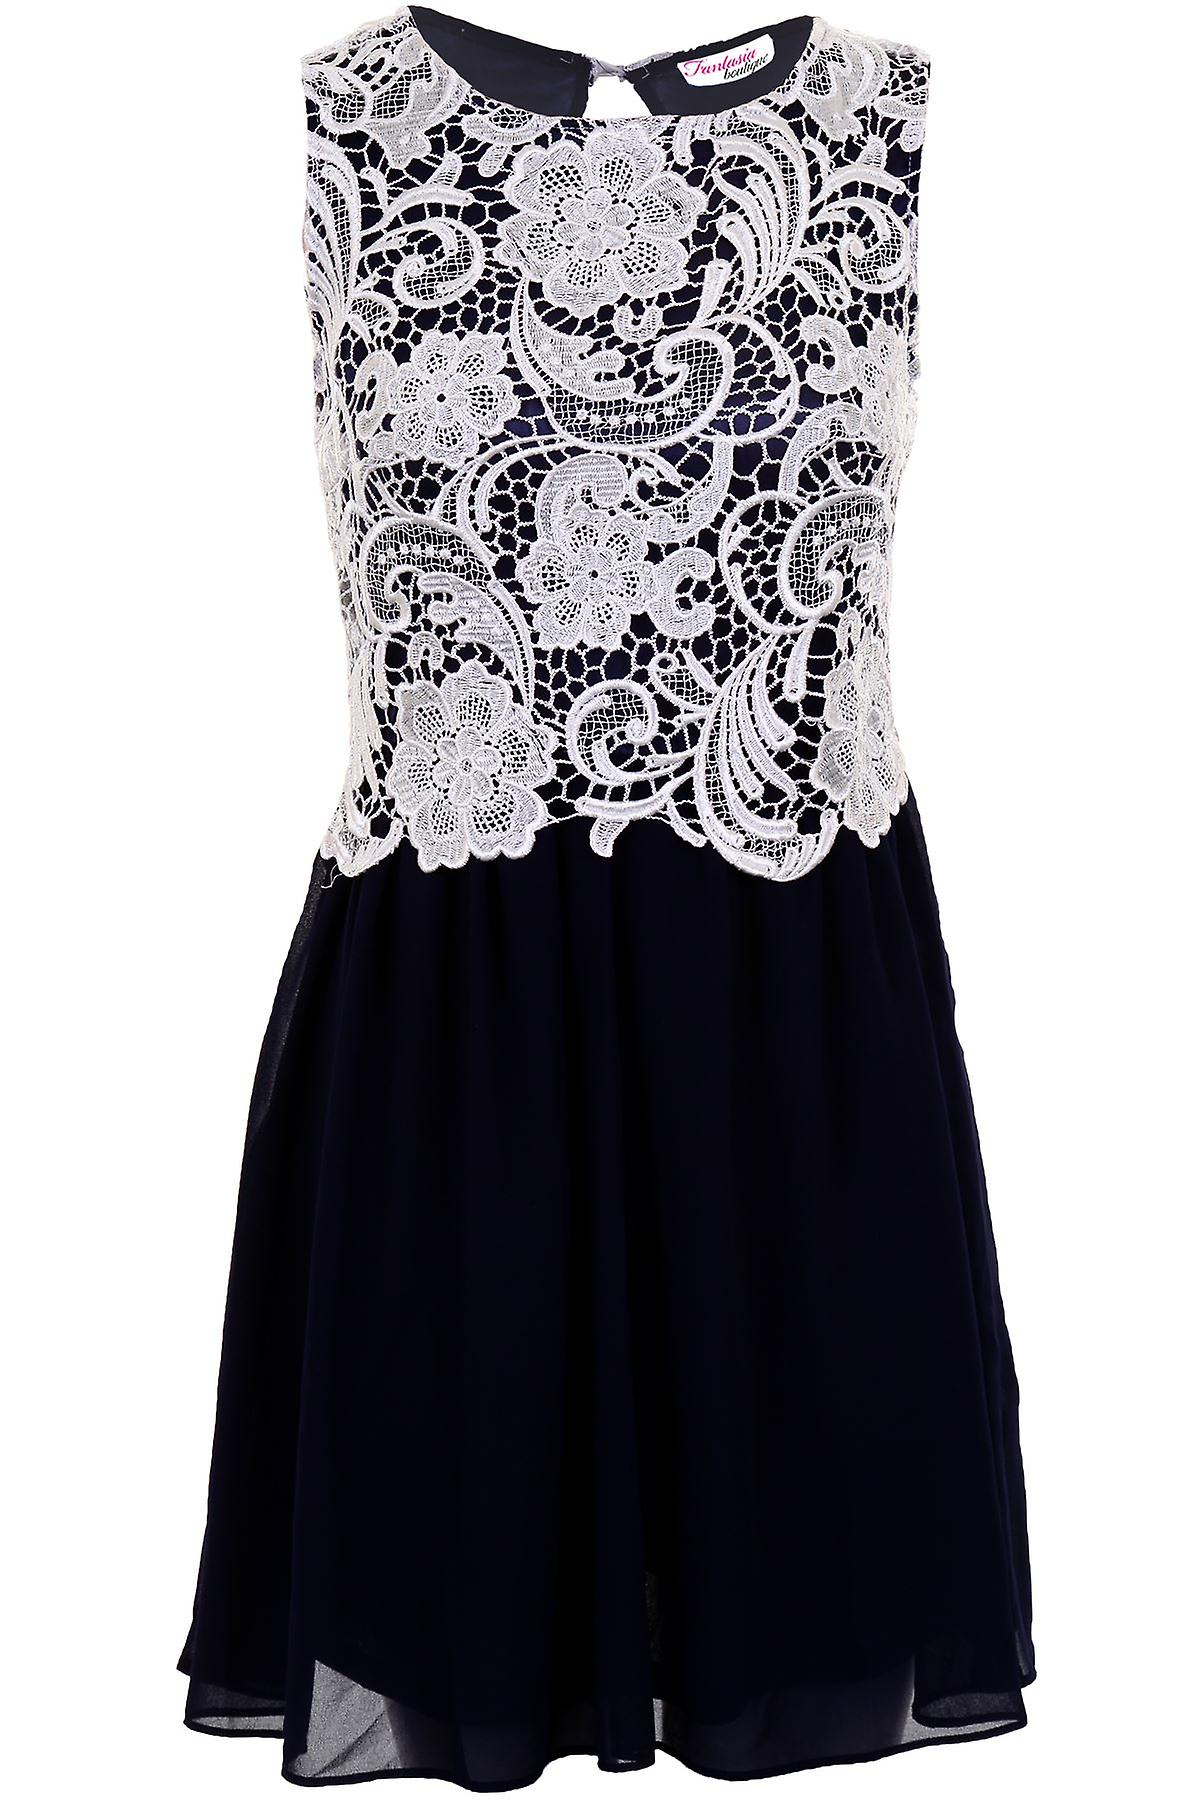 Ladies Lace Contrast Chiffon Flare Pleated Open Back Women/'s Party Evening Dress